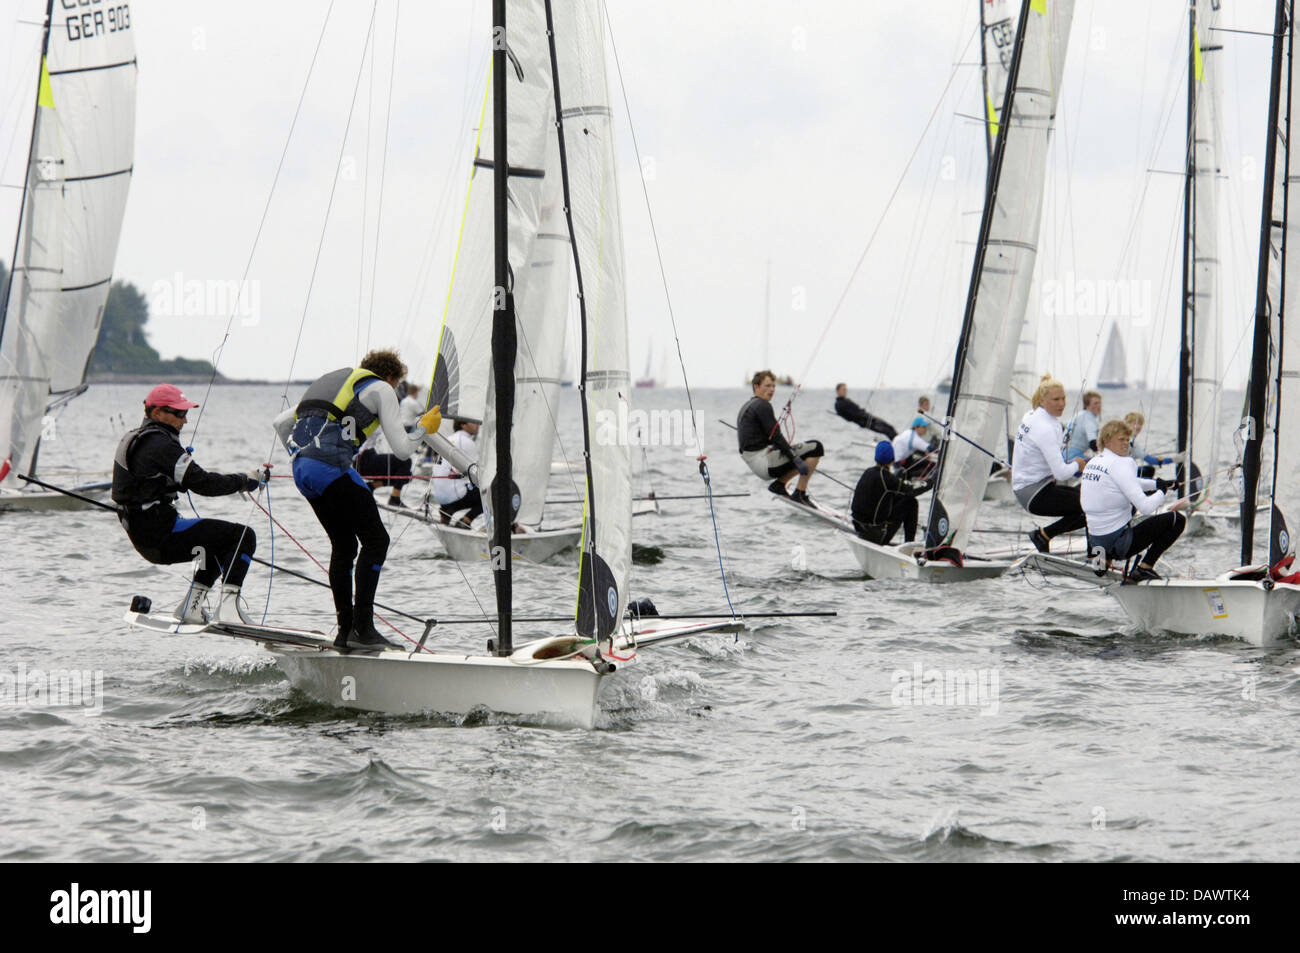 Participants in the 49er class regatta compete at the Kiel Week offshore Kiel, Germany, 16 June 2007. More than - Stock Image